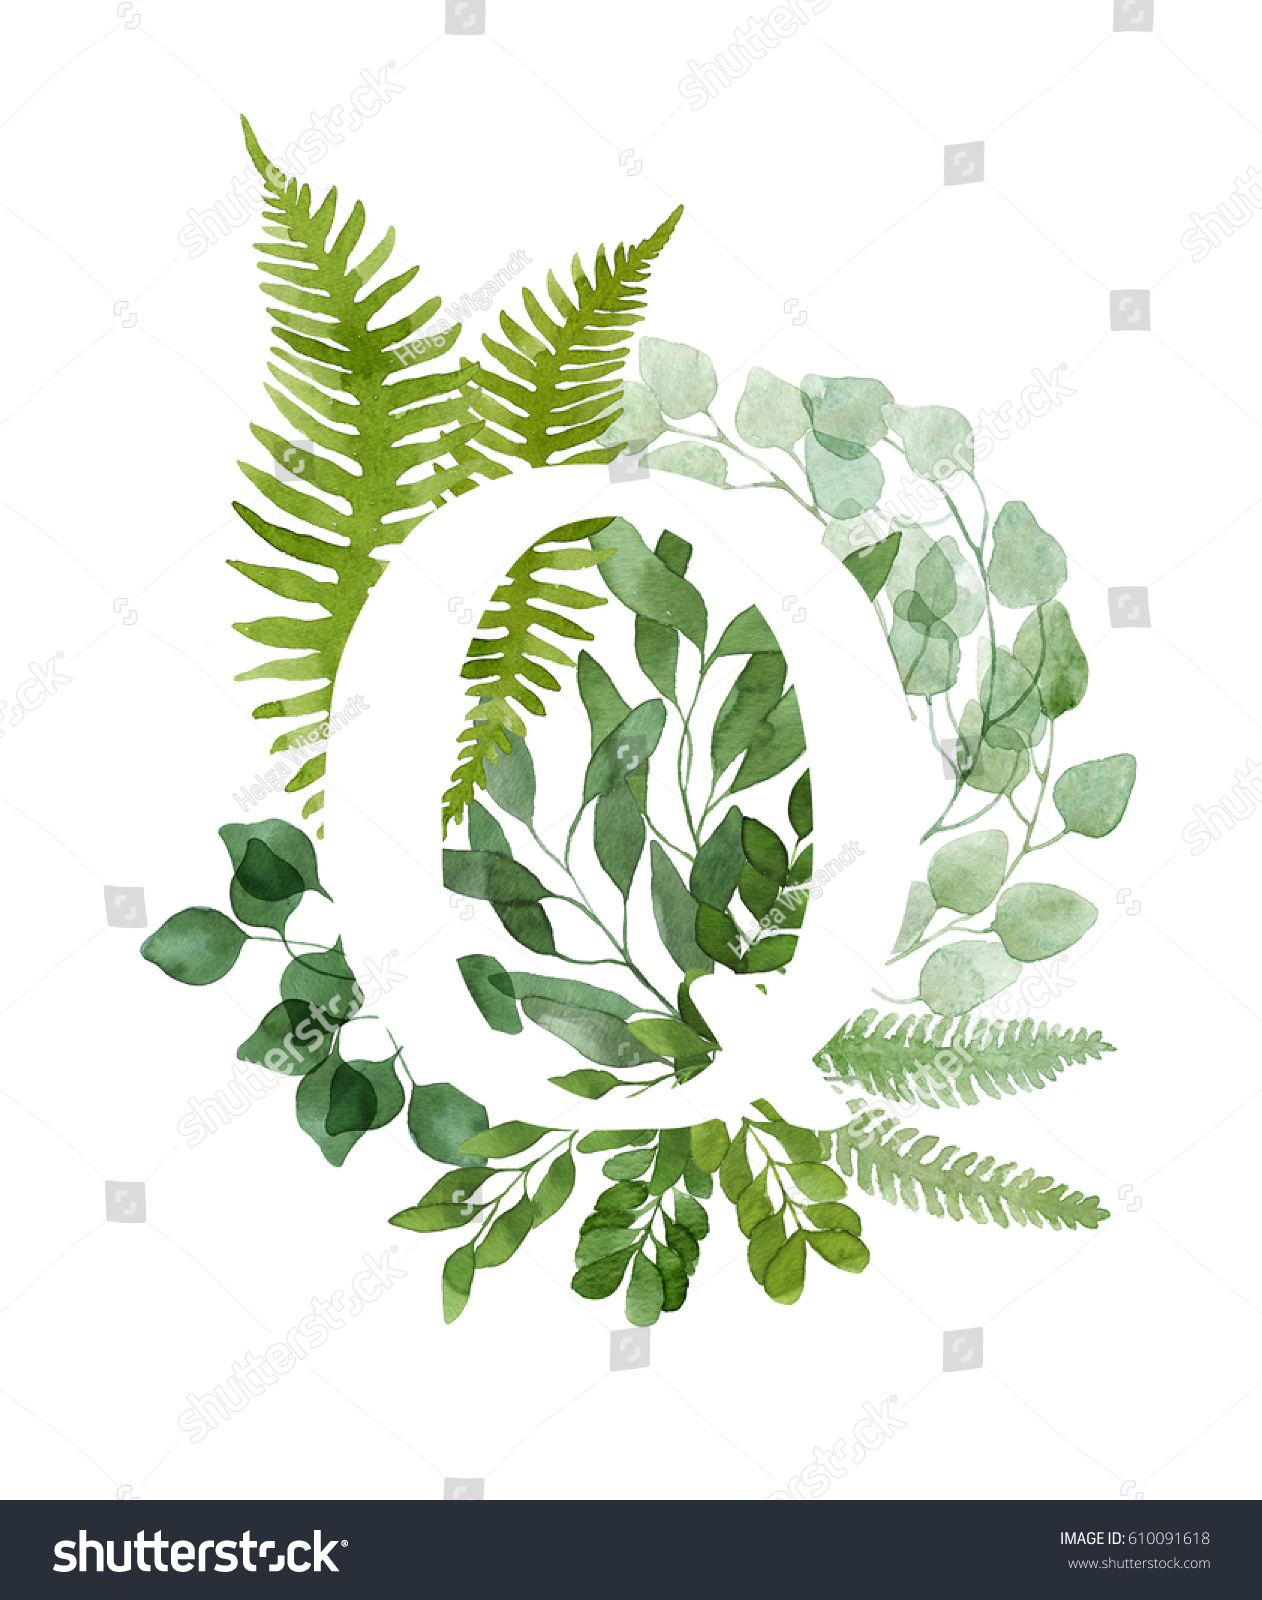 Floral letter q beautiful green leaves stock illustration for Watercolor greenery